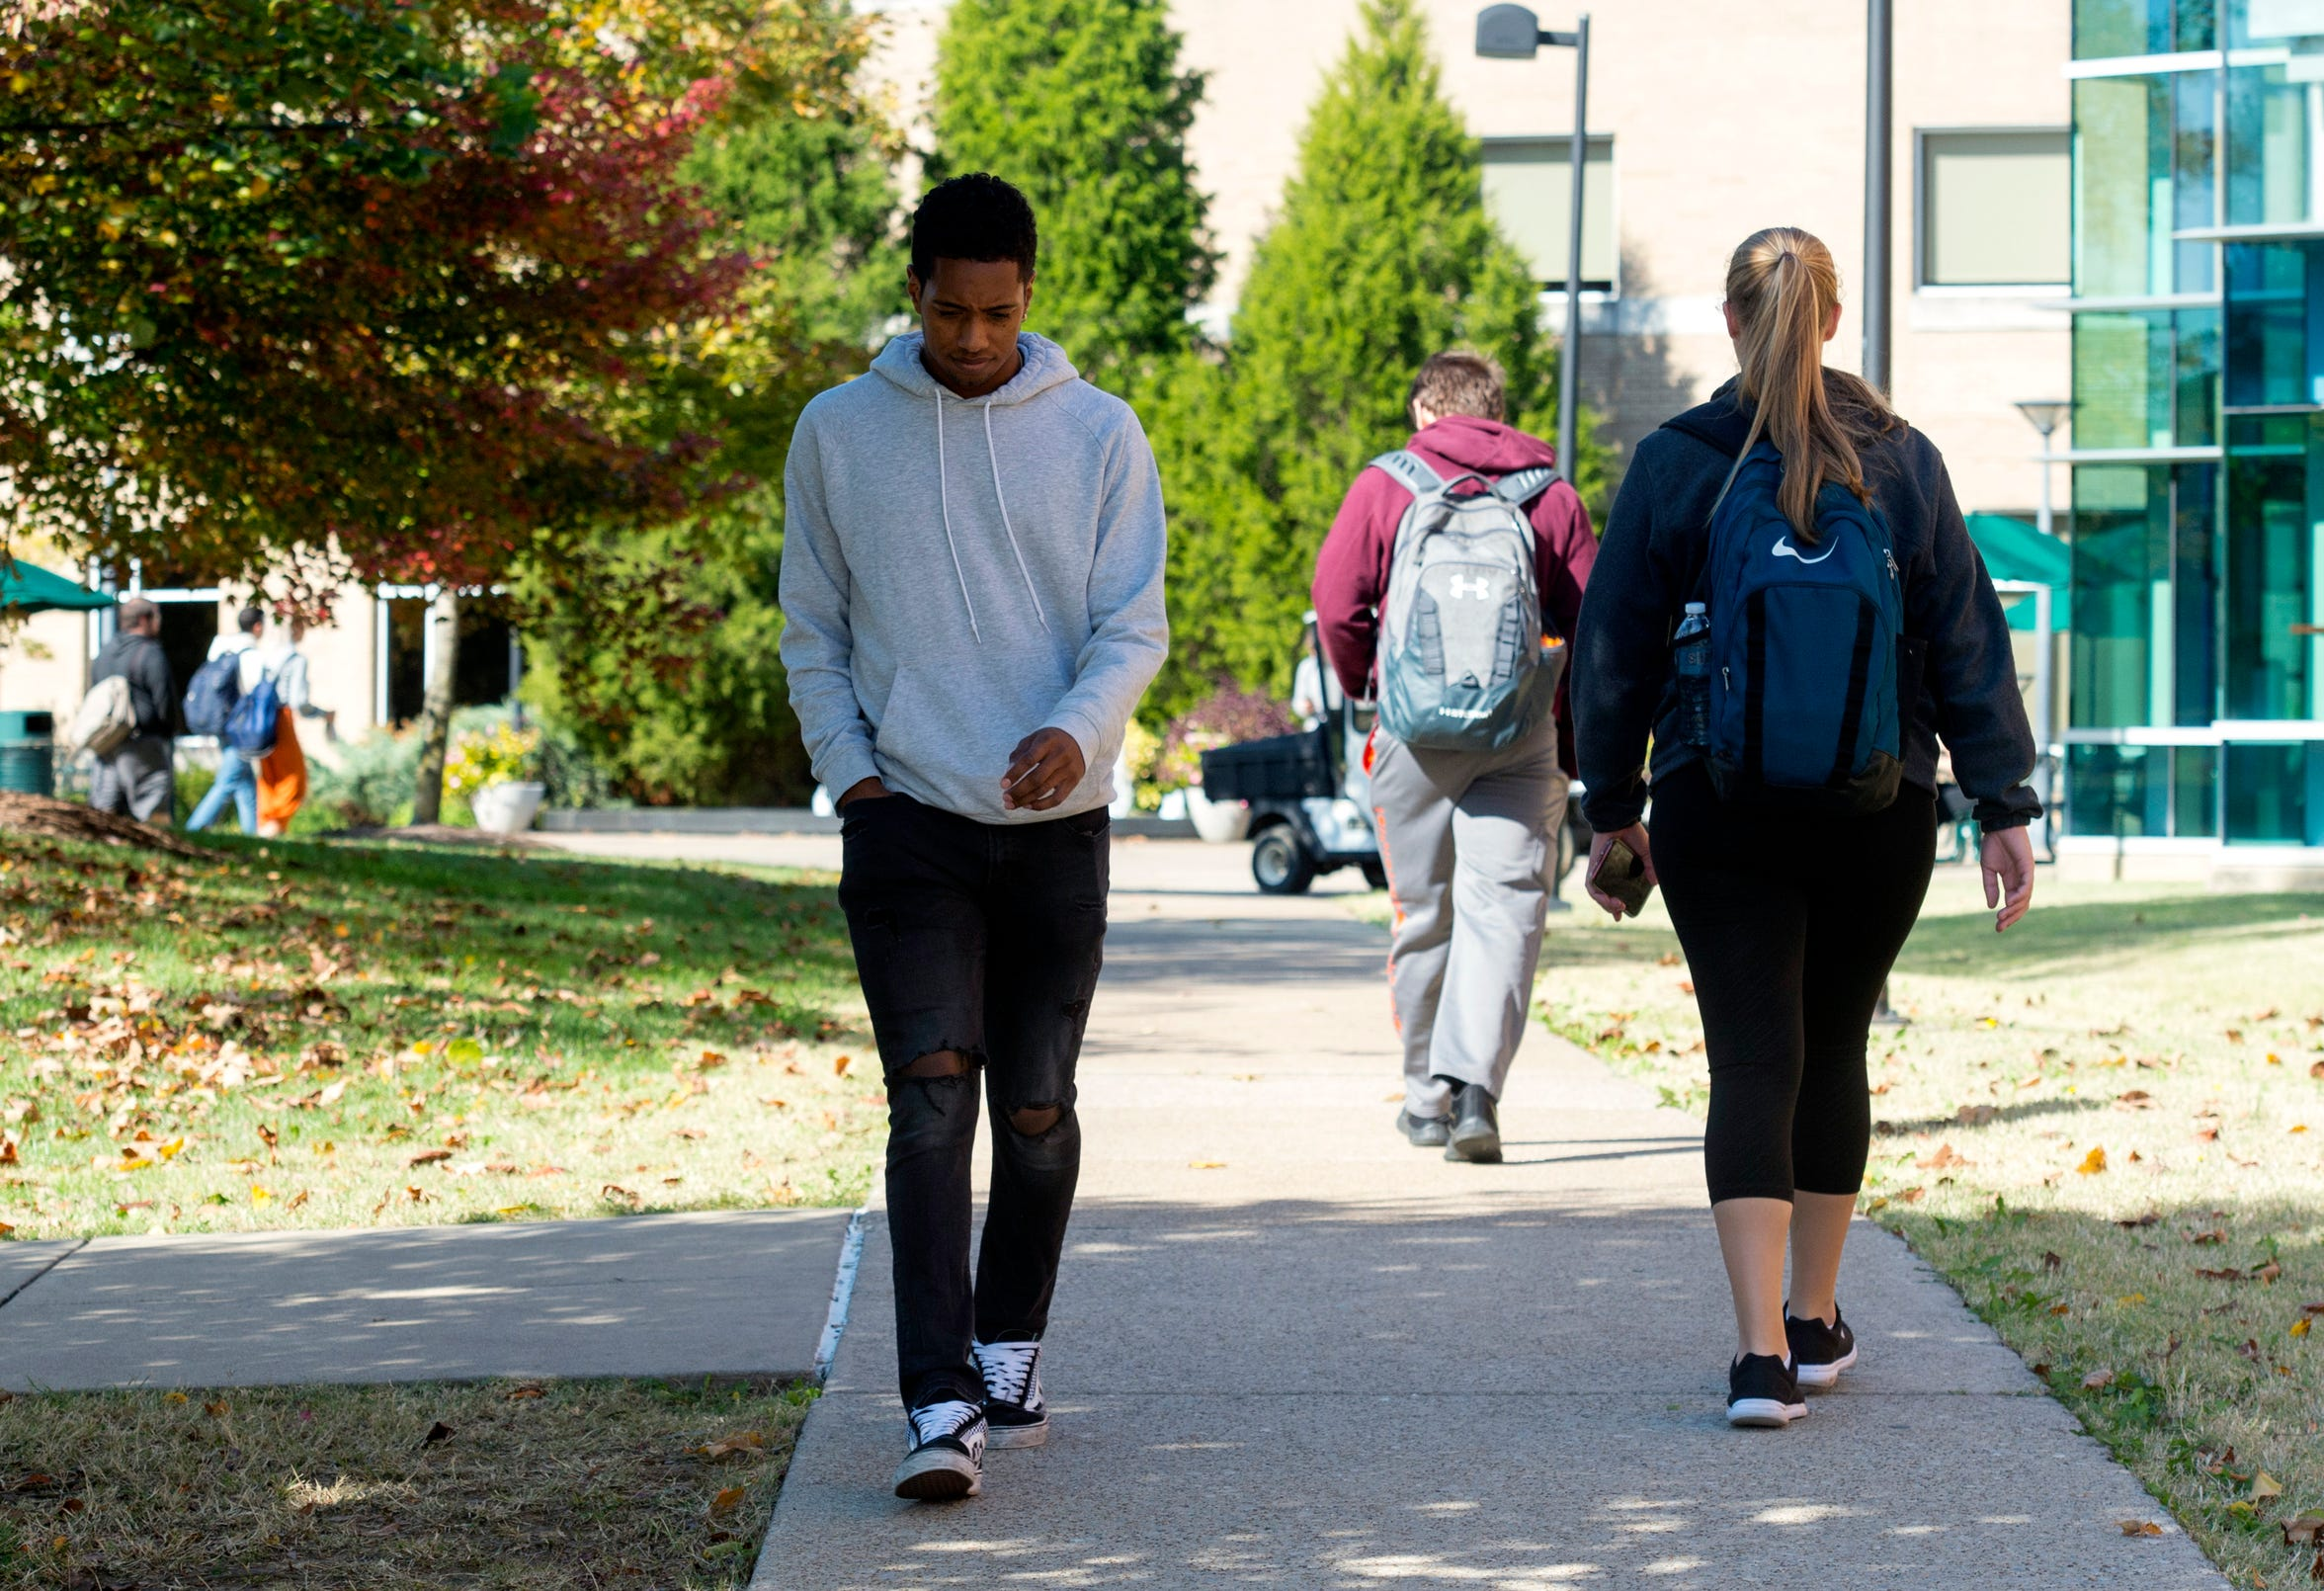 University of Southern Indiana Cross Country runner Darin Lawrence walks towards the PAC on campus Tuesday afternoon, Oct. 23, 2019.